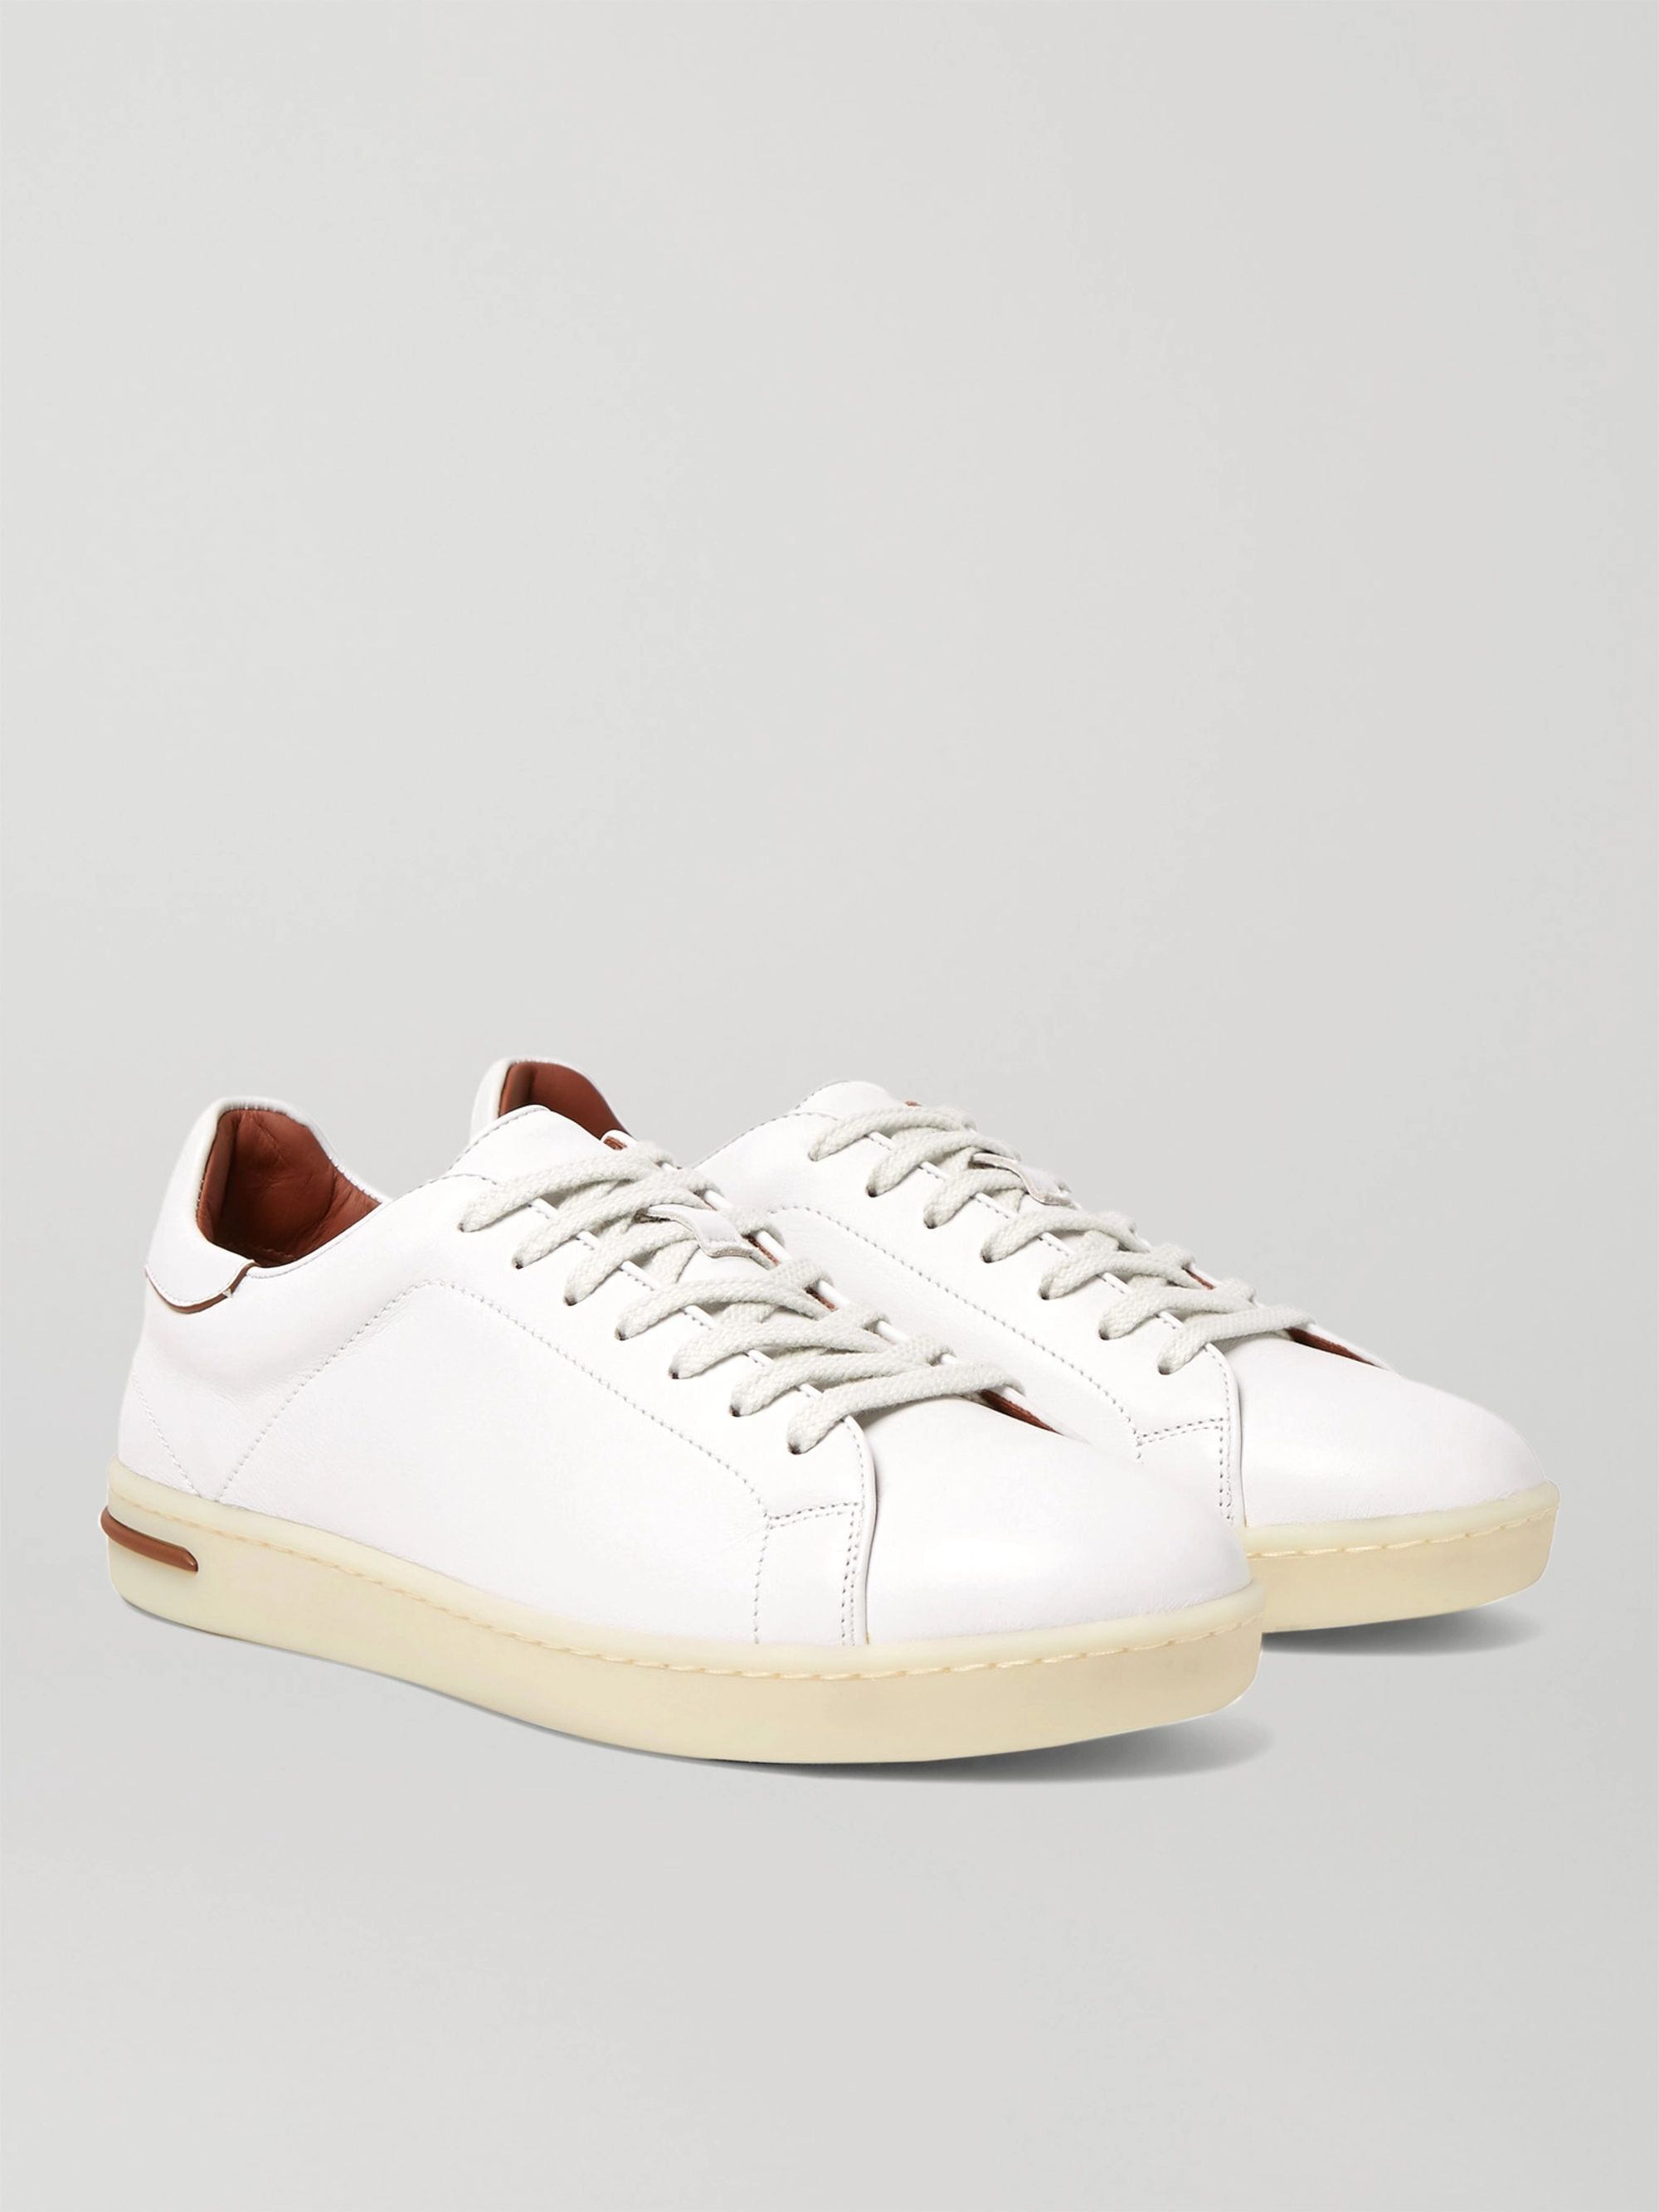 Loro Piana Traveller Walk Leather Sneakers